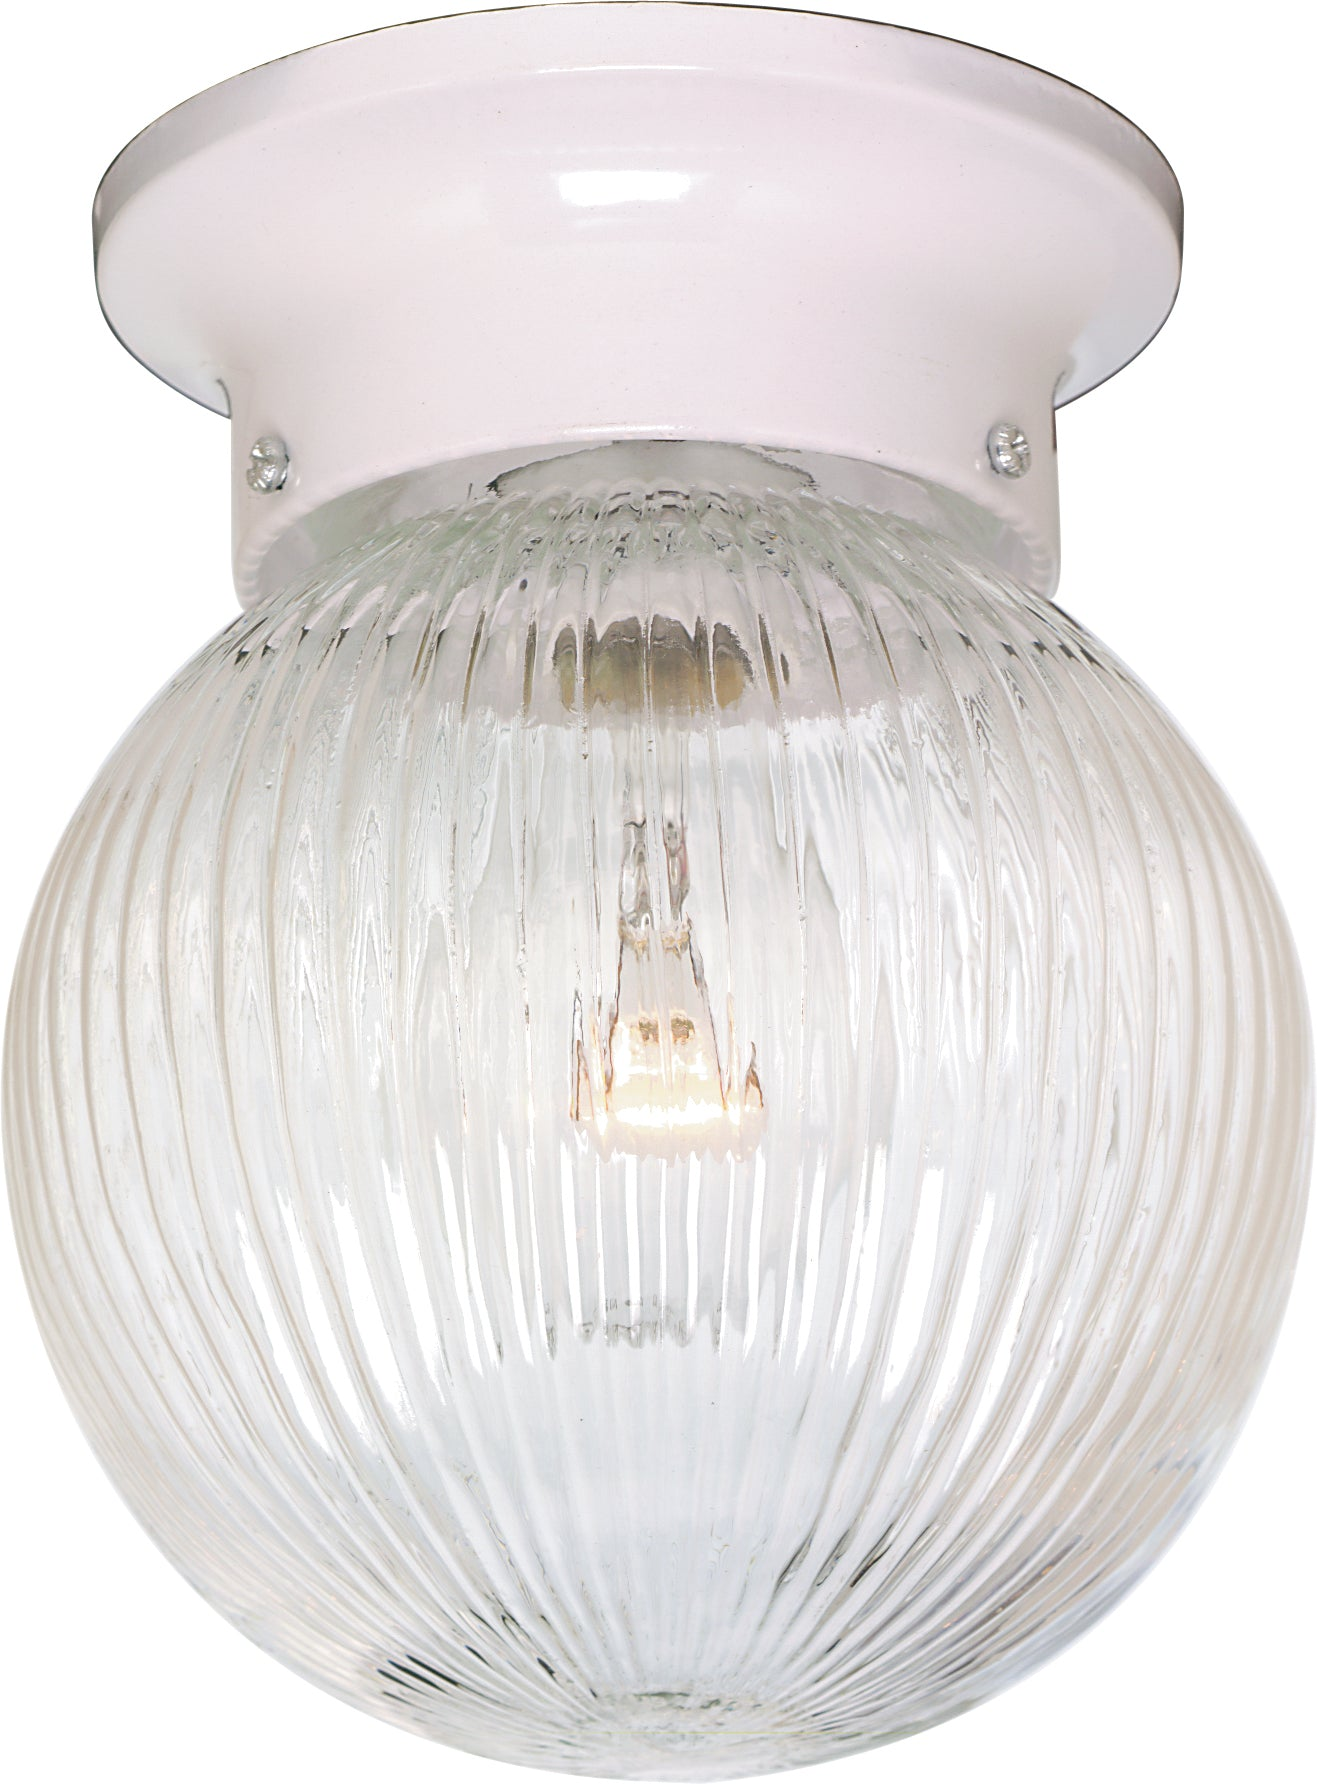 """1-Light 6"""" Flush Mounted Close-to-Ceiling Light Fixture in White Finish"""